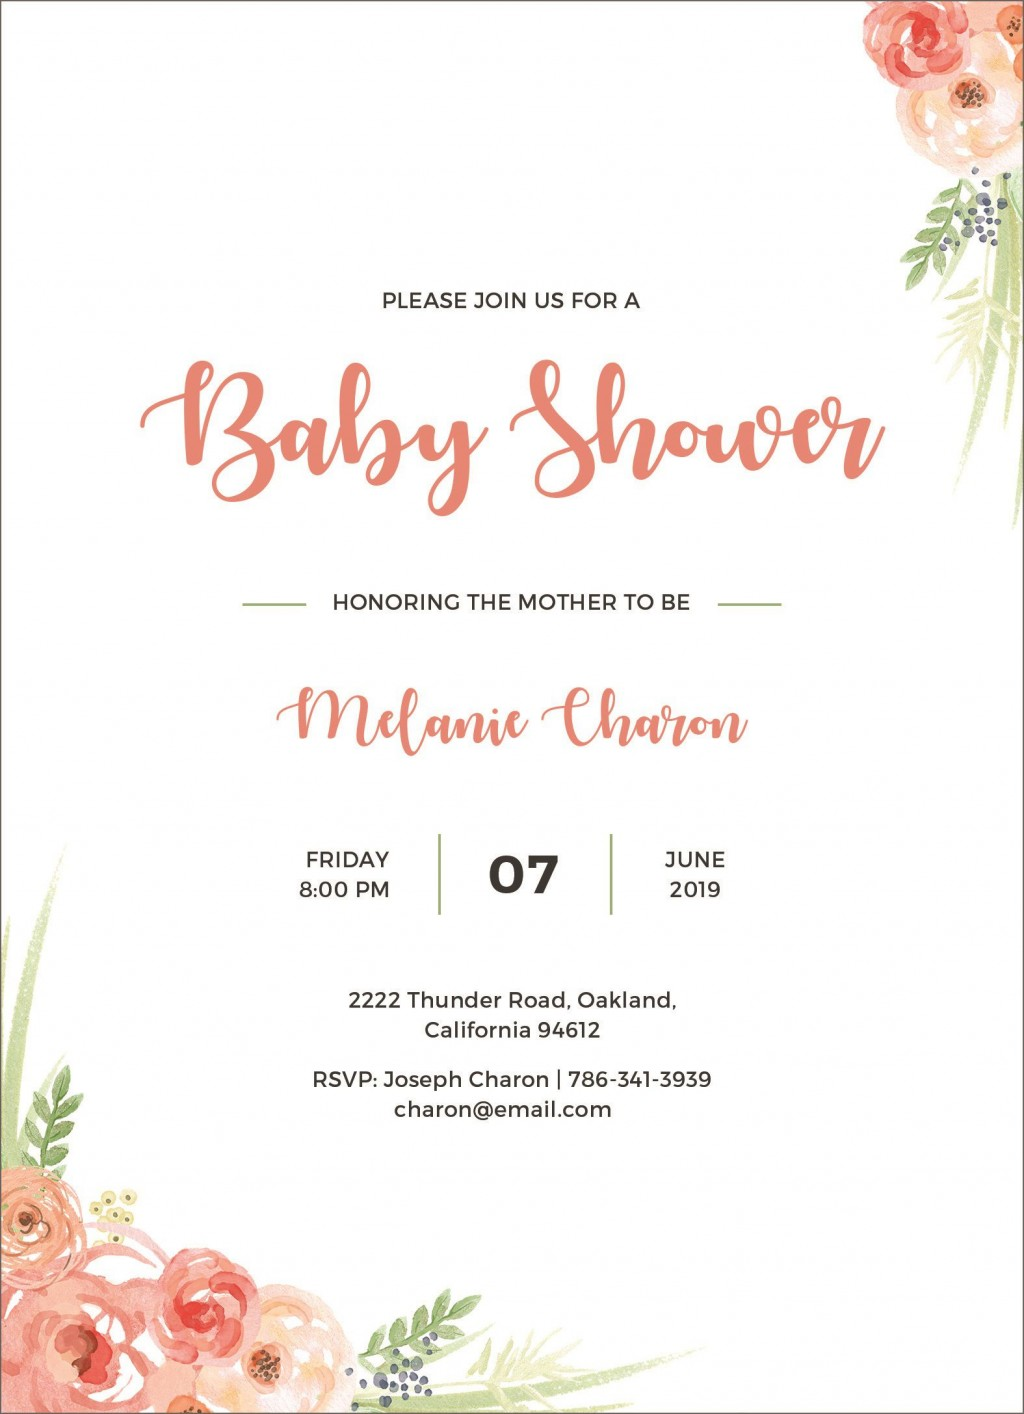 004 Stupendou Baby Shower Announcement Template Concept  Templates Invitation India Indian Free With PhotoLarge